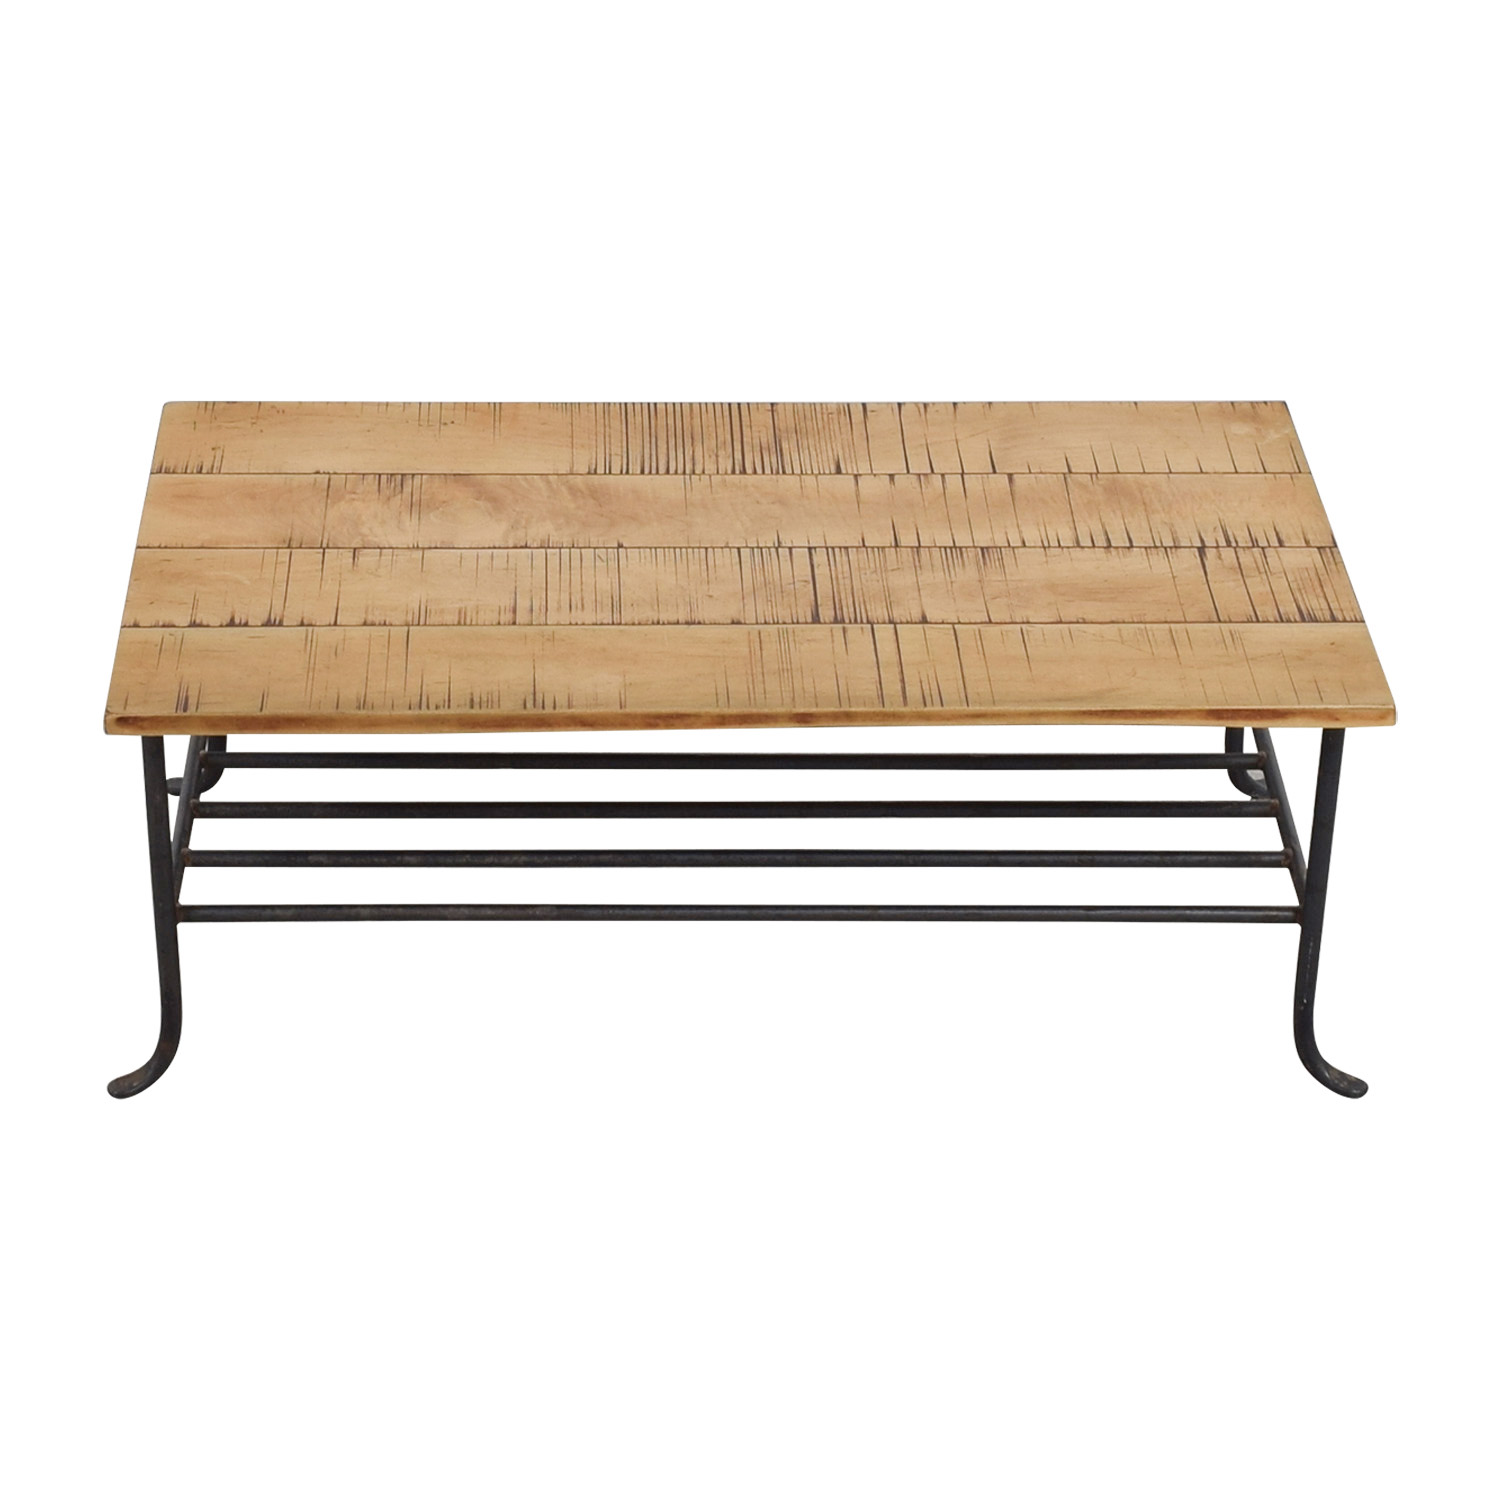 Rustic Wrought Iron and Wood Coffee Table